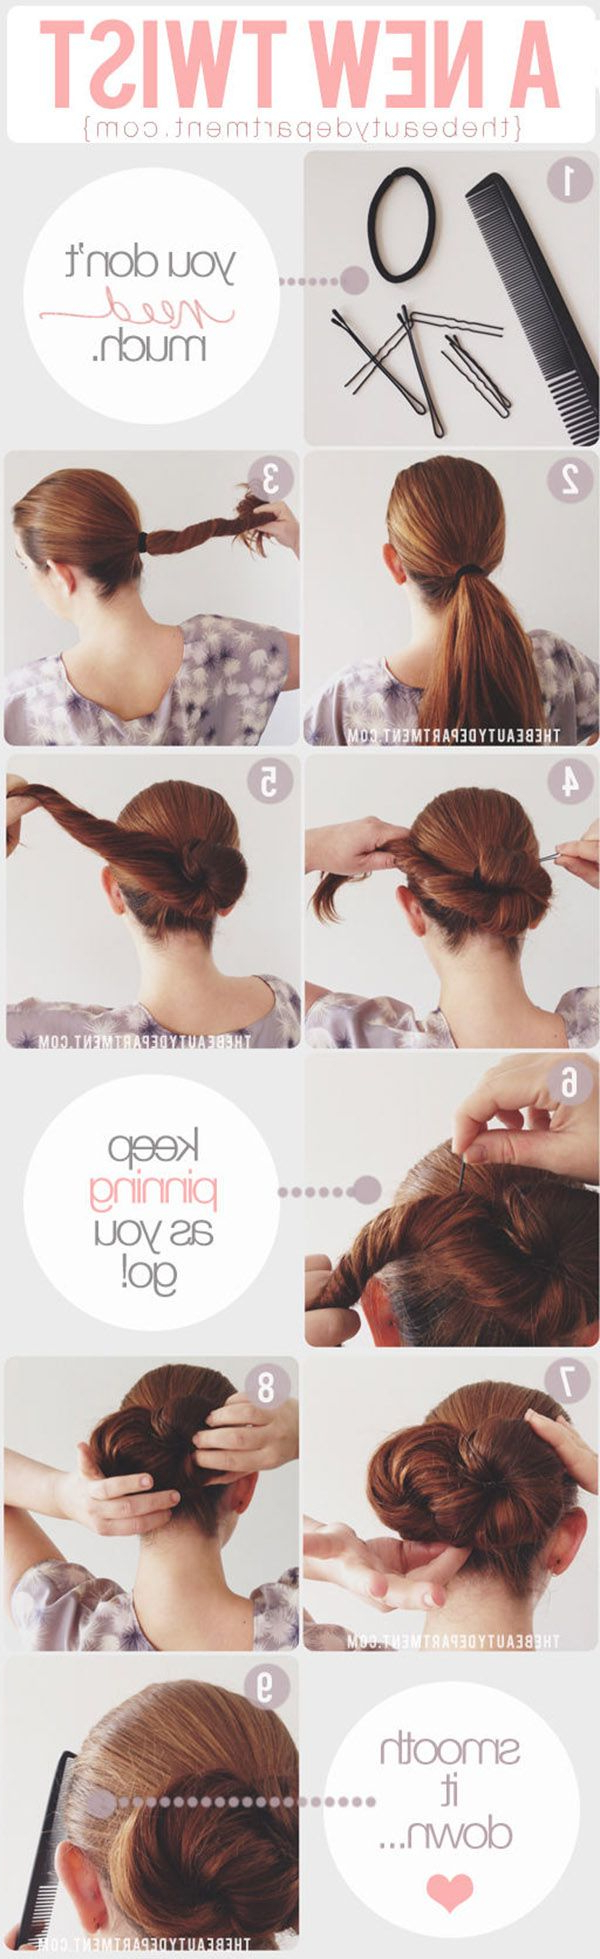 20 Diy Wedding Hairstyles With Tutorials To Try On Your Own (Gallery 9 of 20)